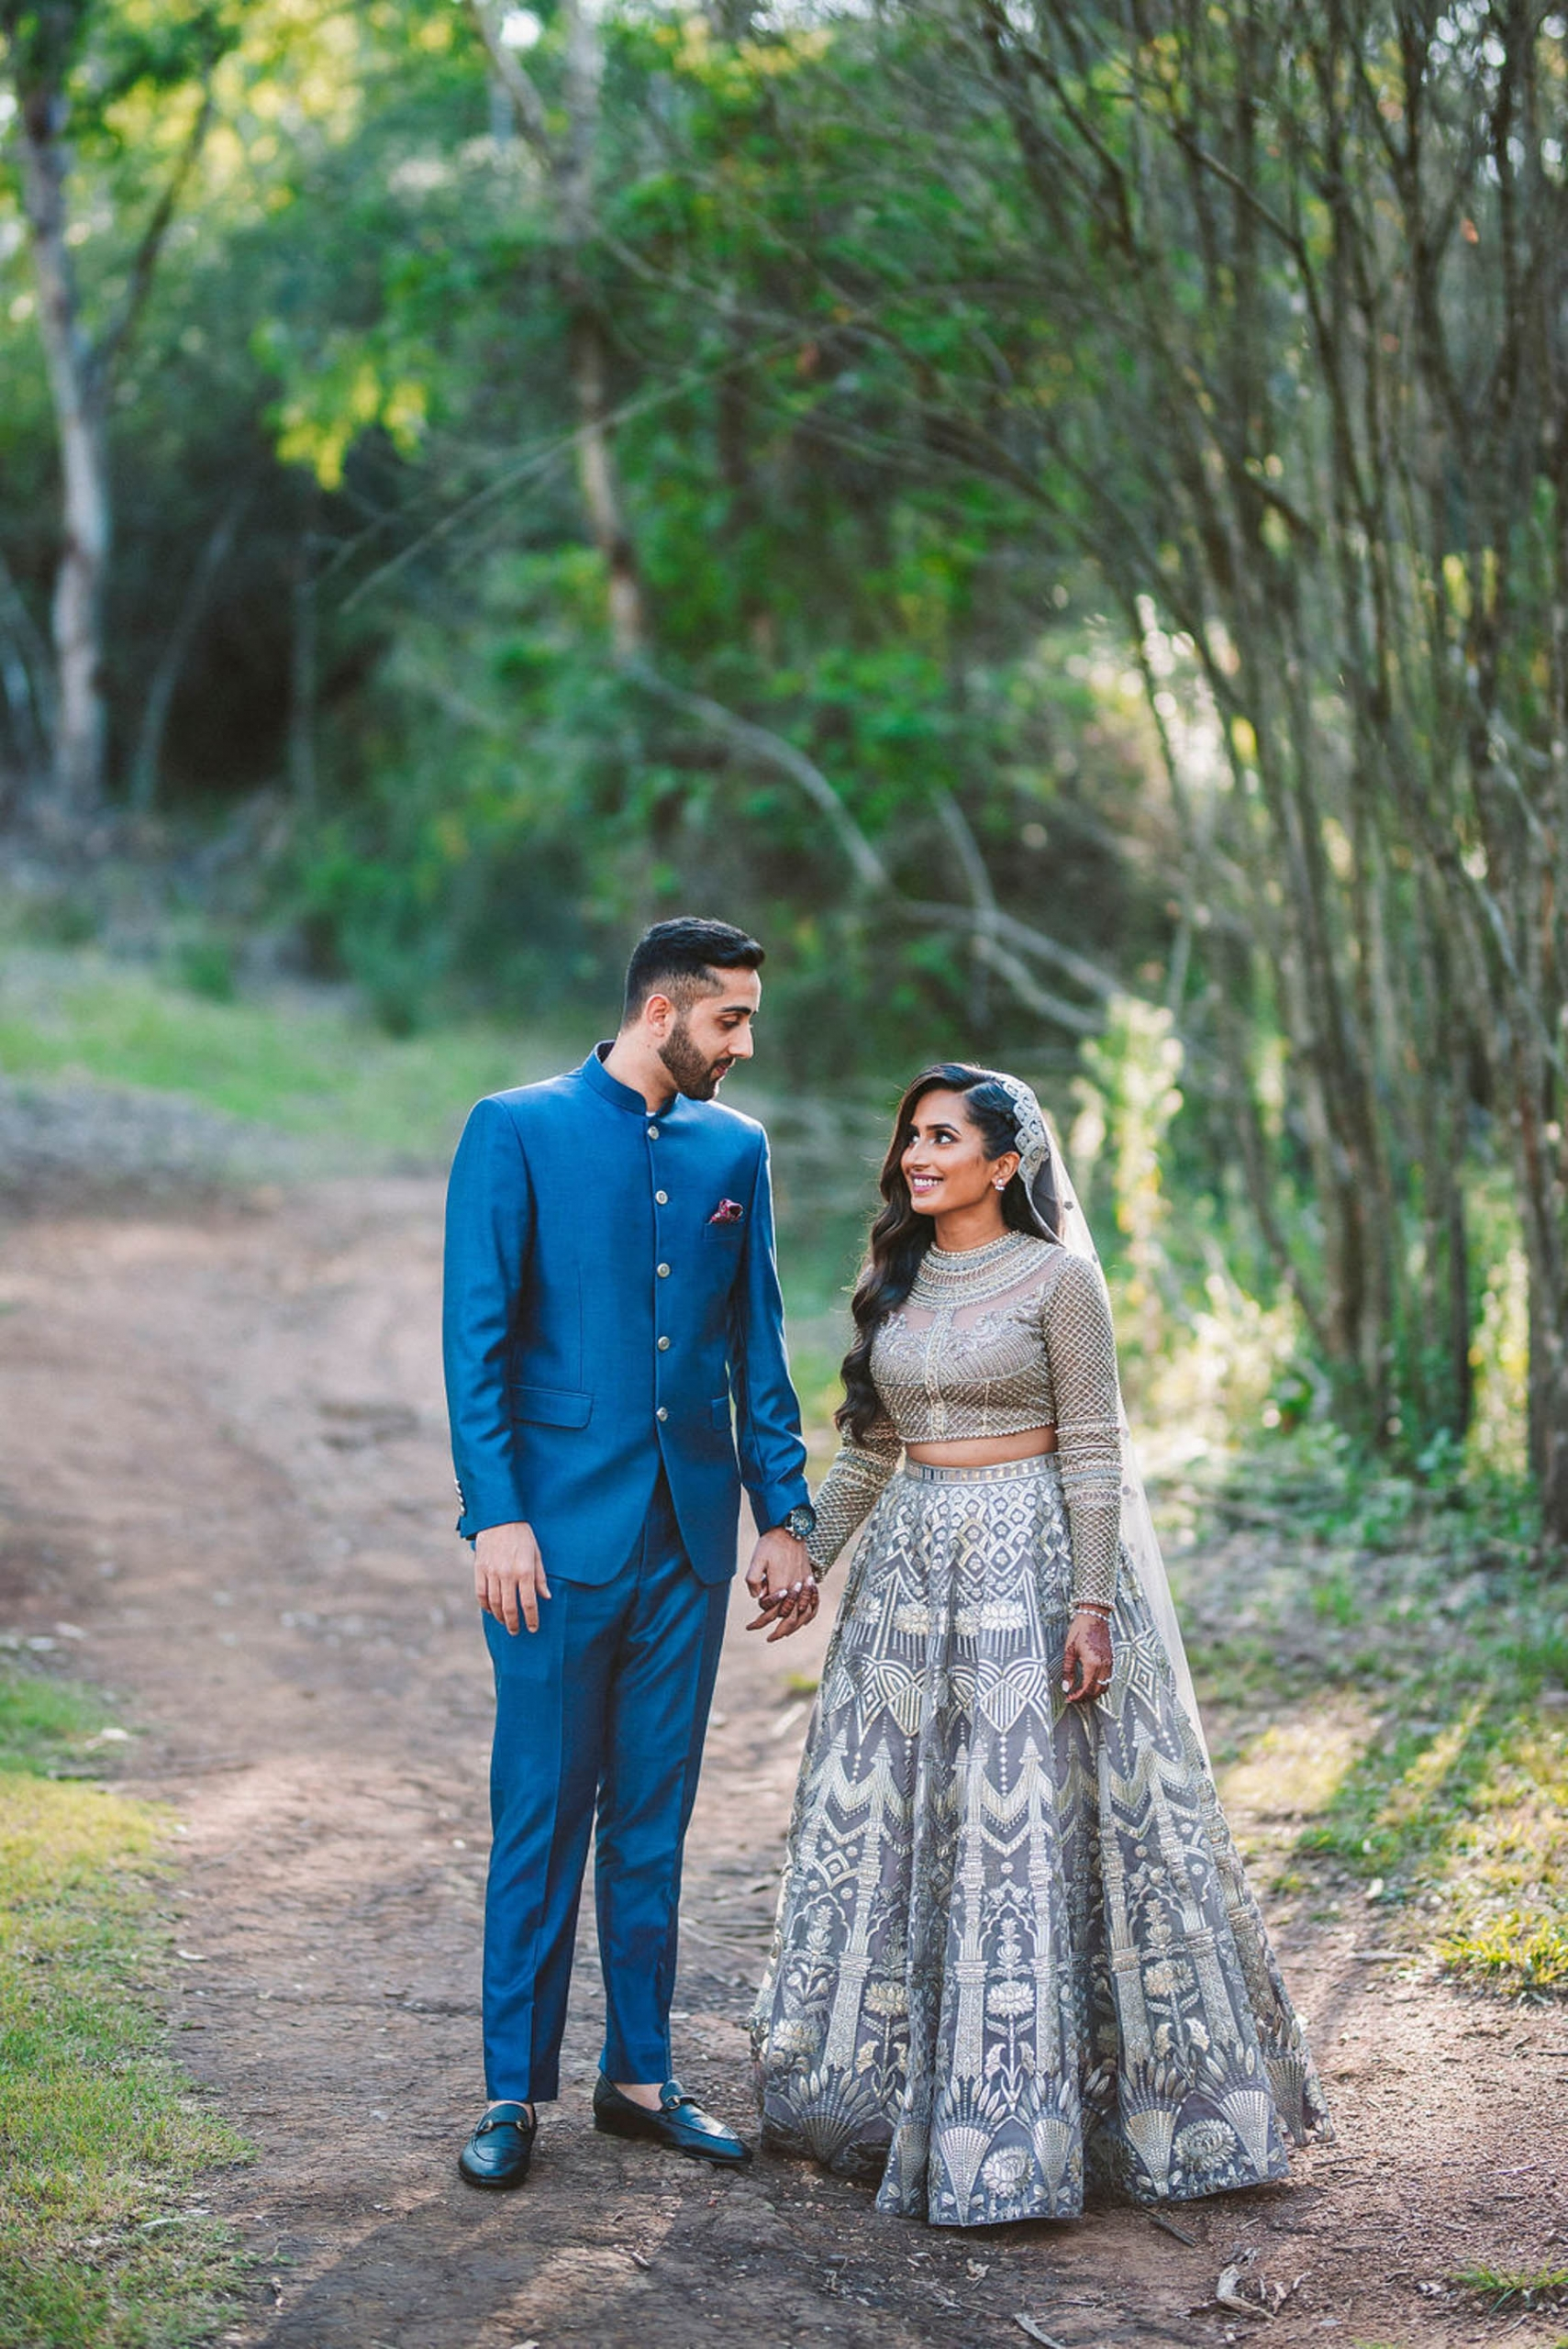 Shaheen and Qaseem's Indian Pakistani cross-cultural wedding in Sydney.